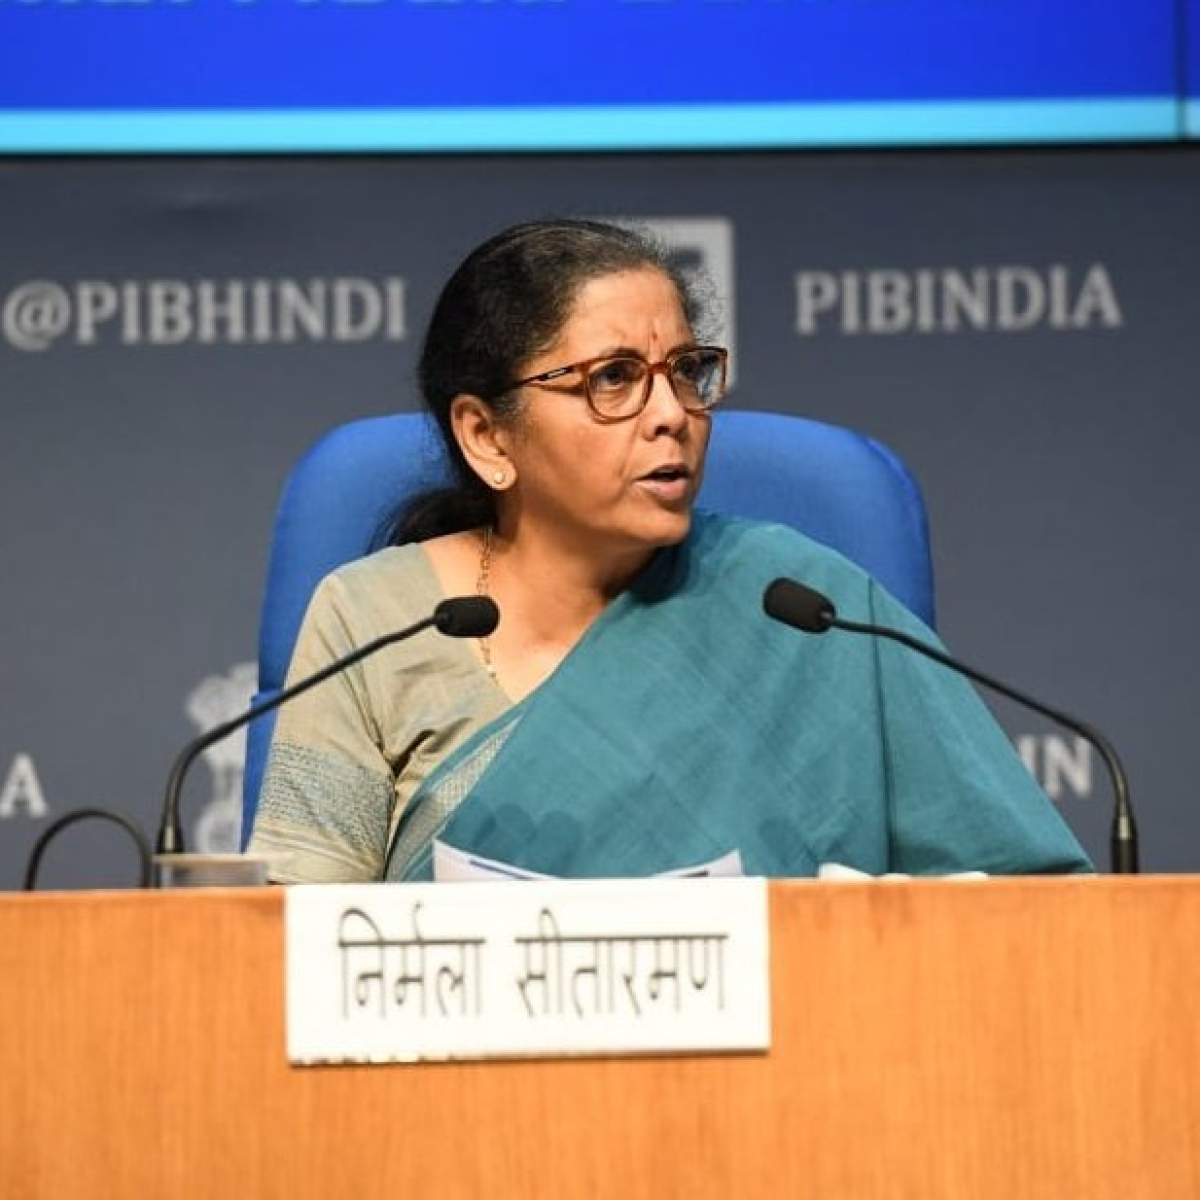 Finance Ministry allows five states to raise Rs 9,913 crore as additional borrowings on meeting reform targets